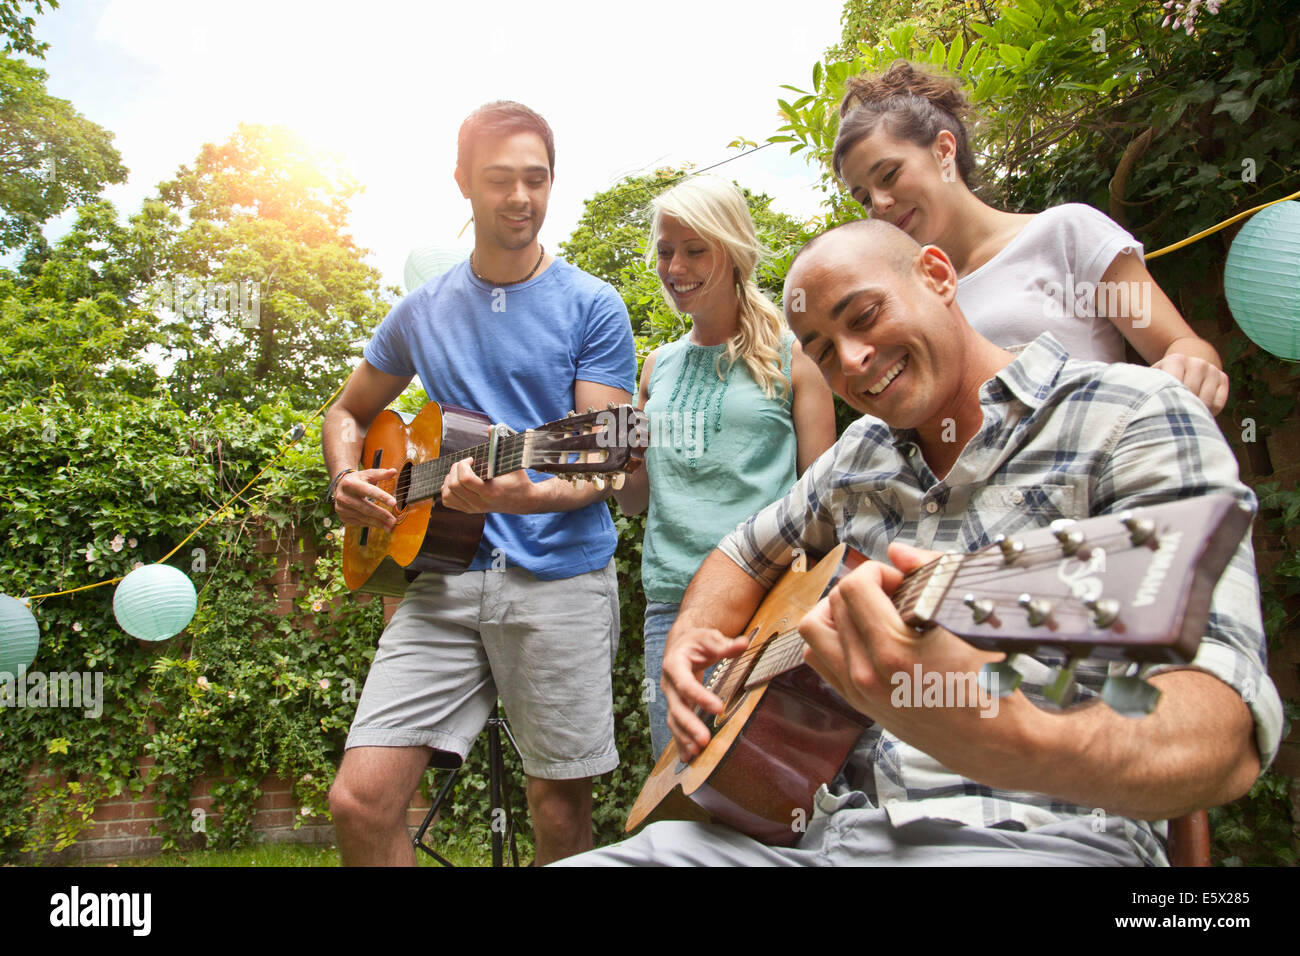 Male friends playing acoustic guitar in garden for girlfriends - Stock Image